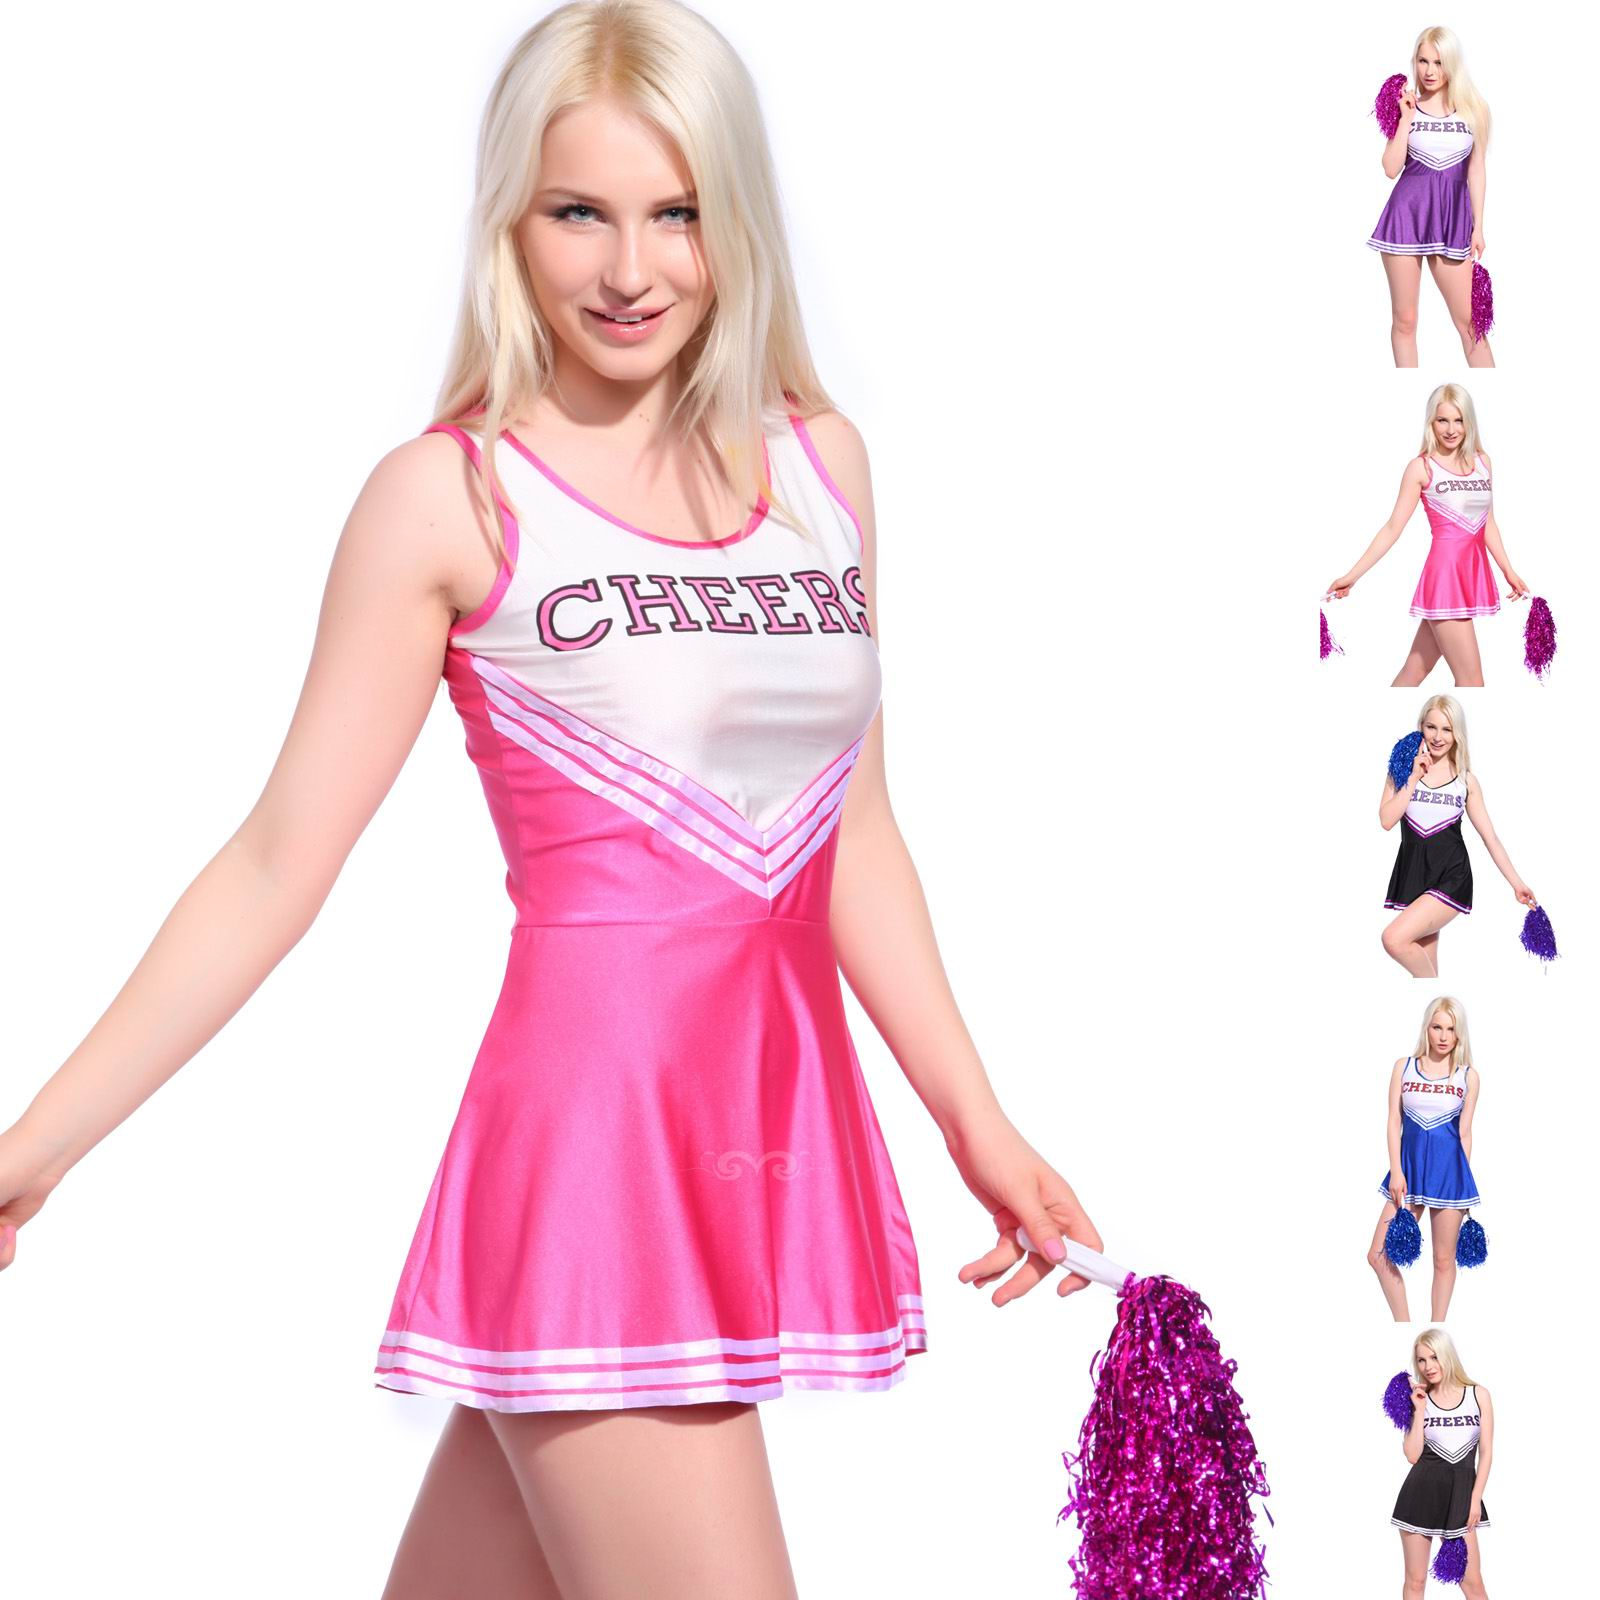 F1537-4 Ladies Cheerleading Costumes Outfit